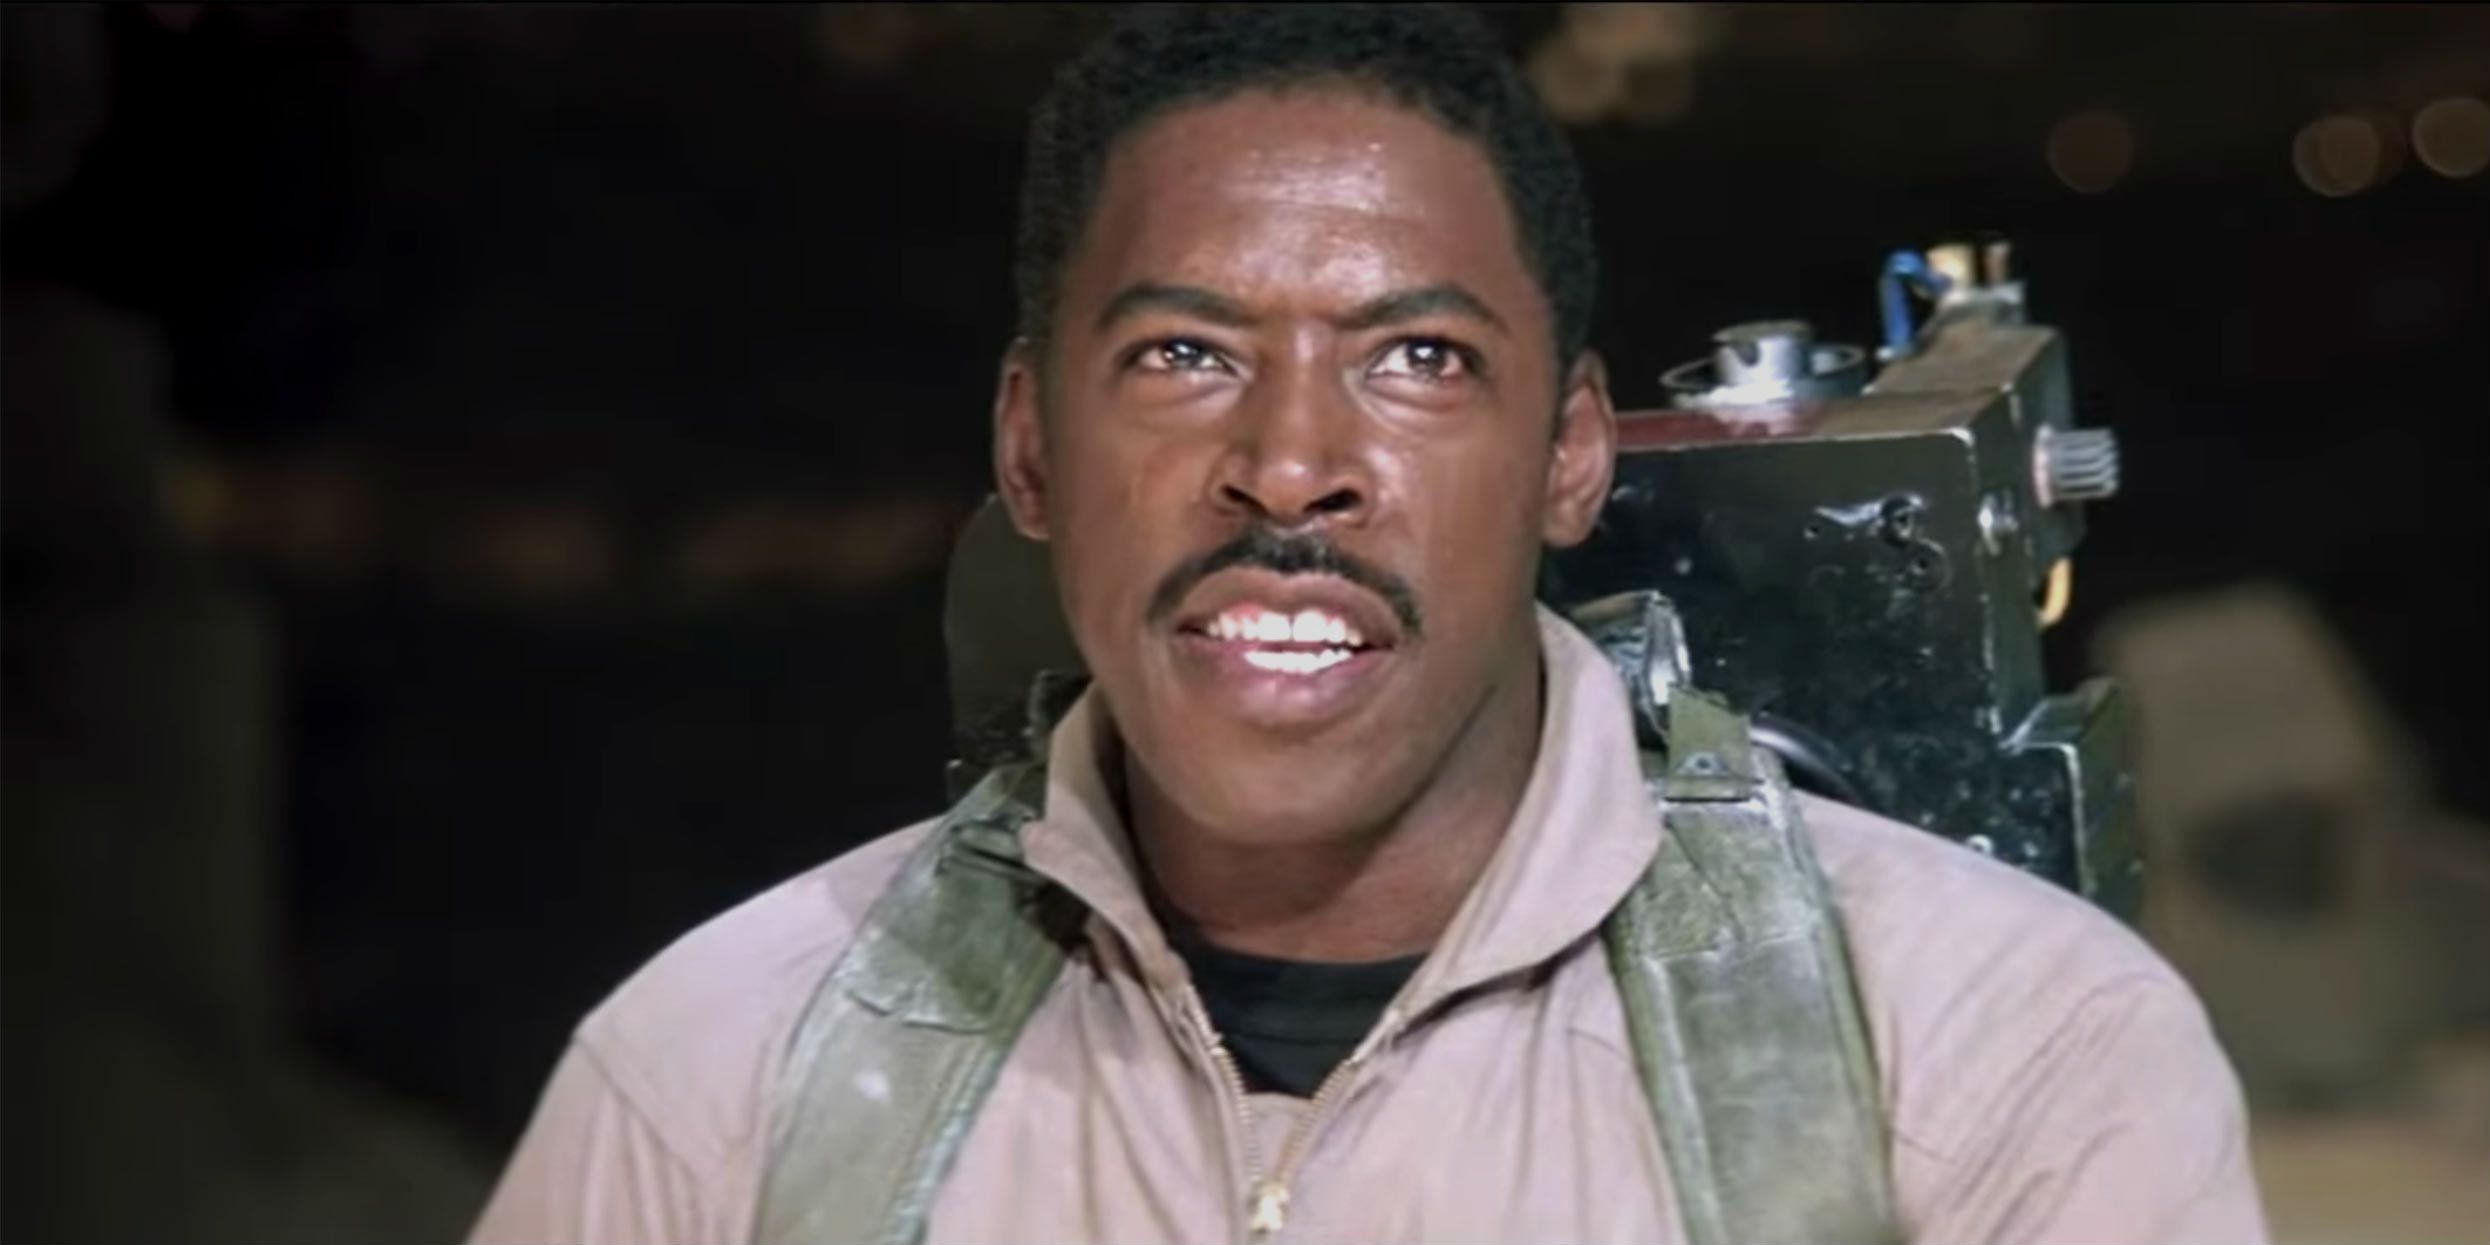 Ghostbusters' Ernie Hudson Shares Sequel Filming Update While In Costume